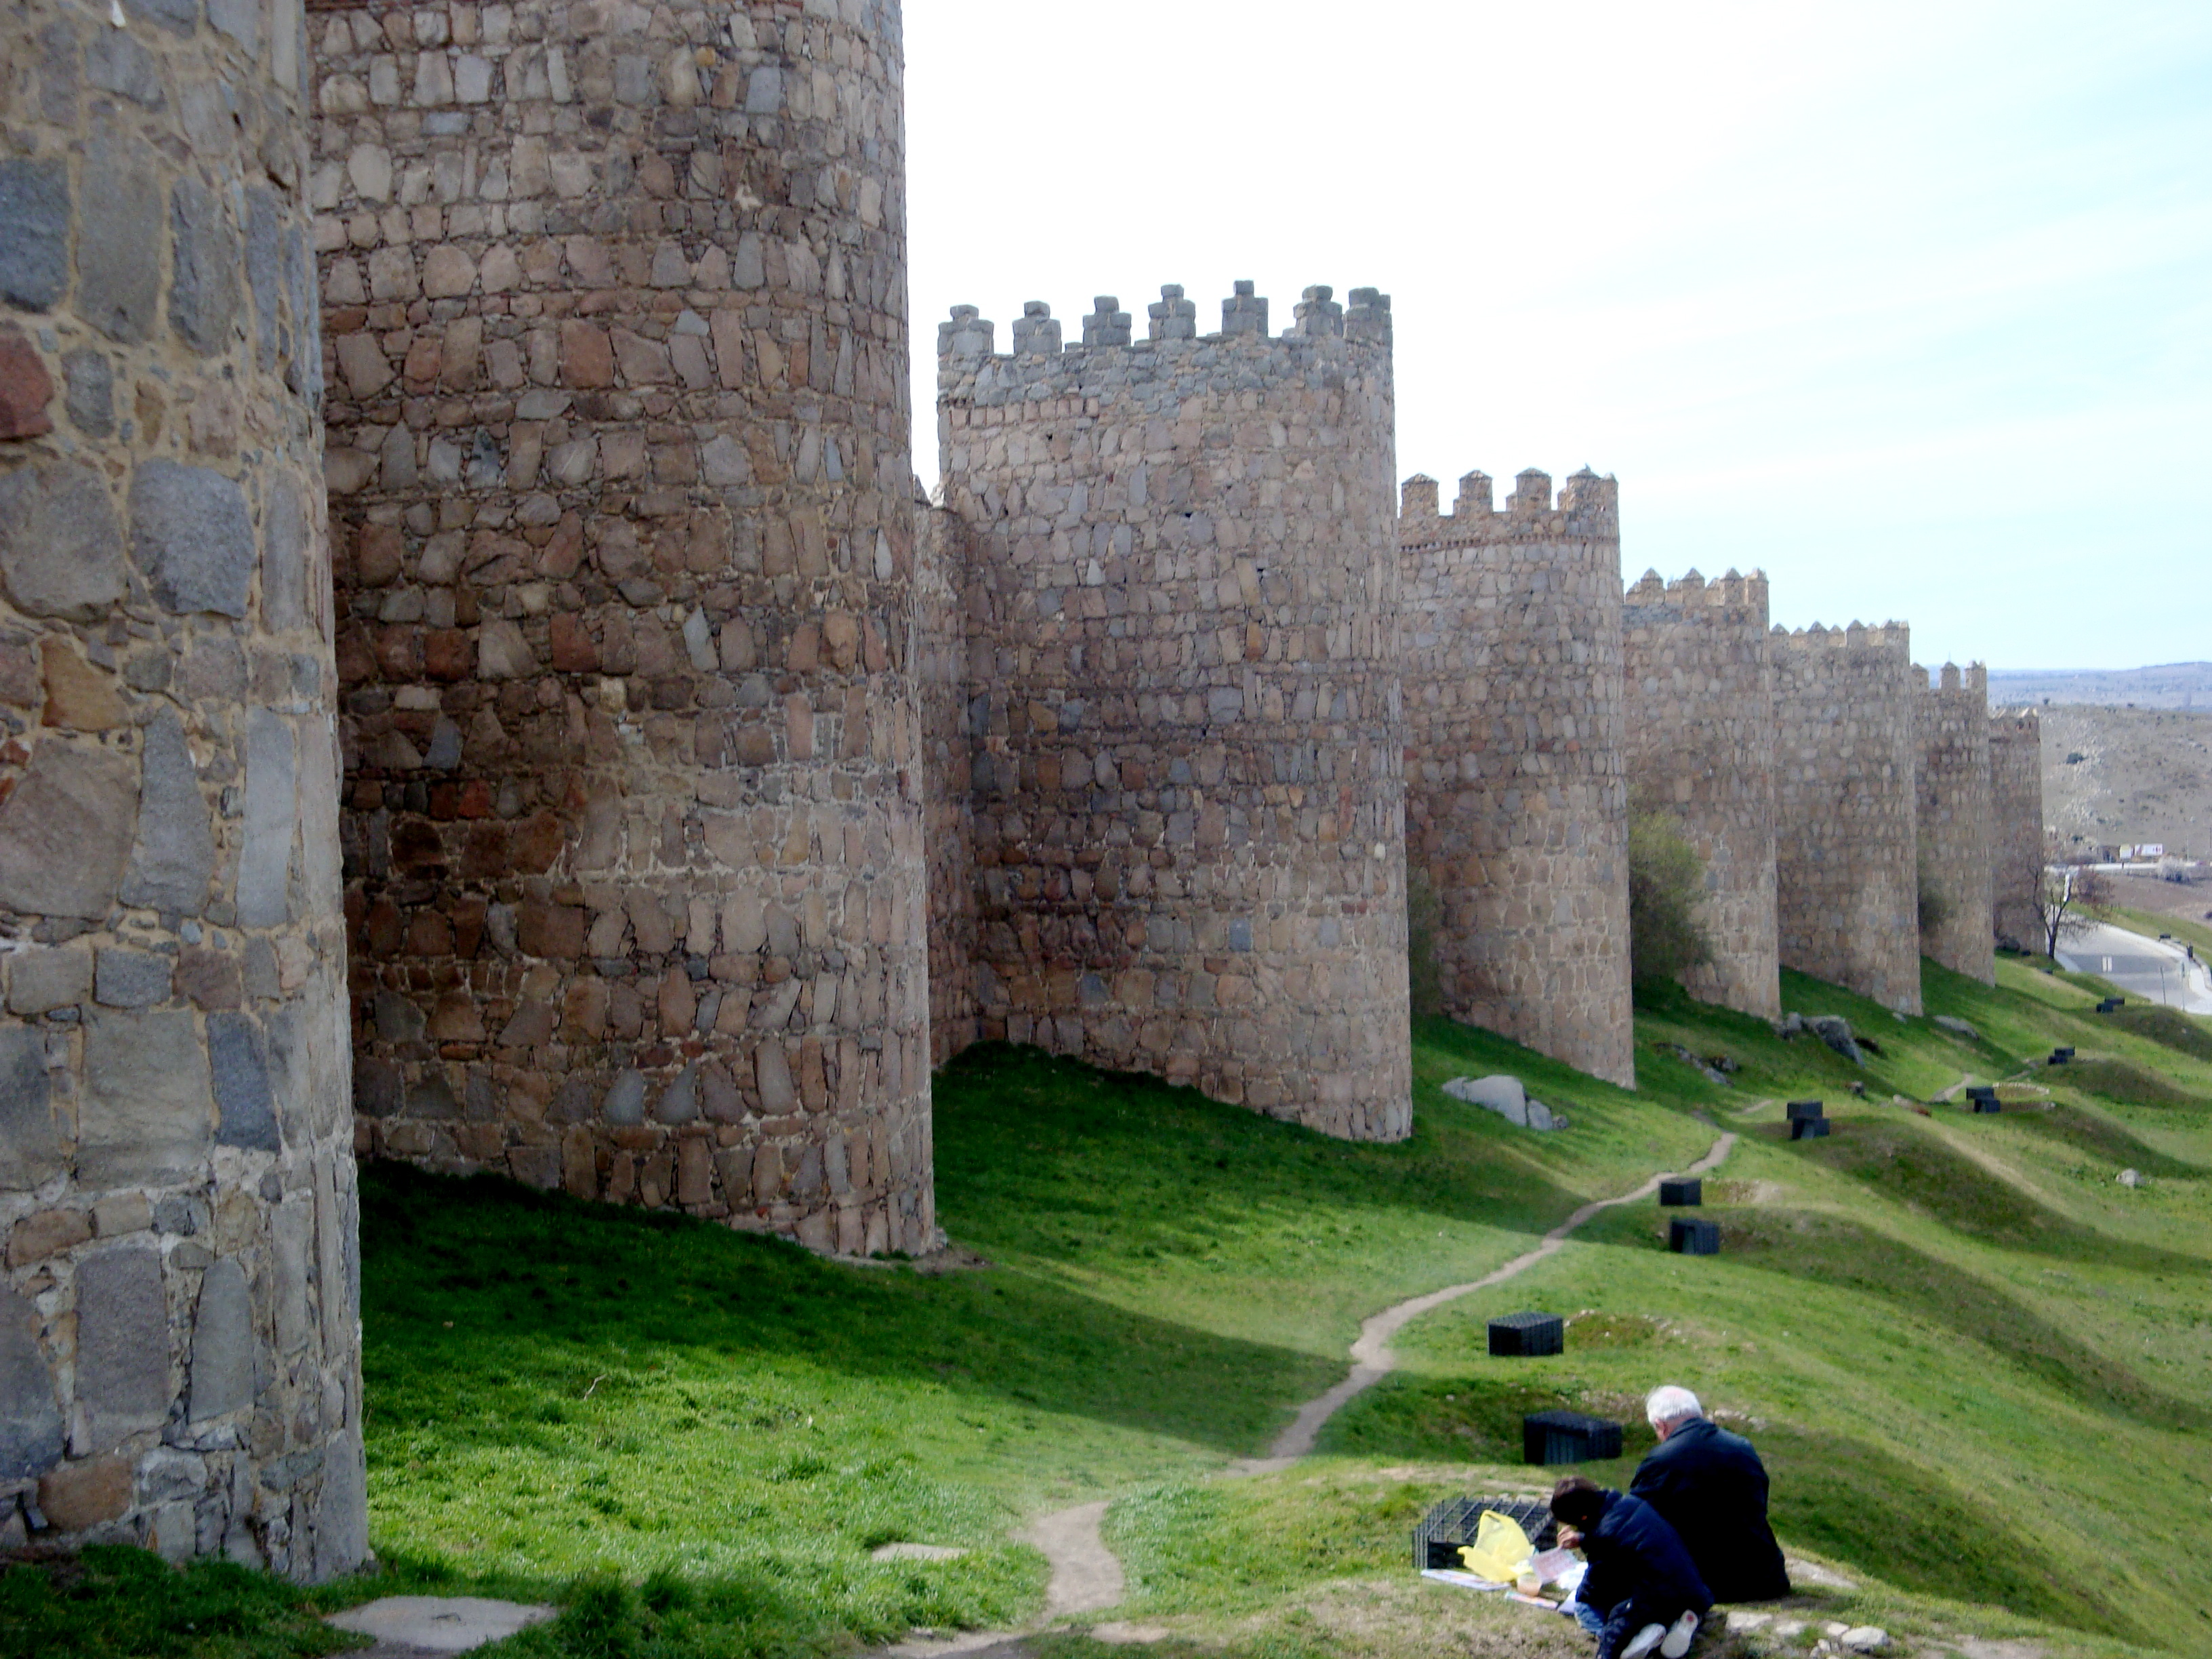 Walls of Ávila, Spain